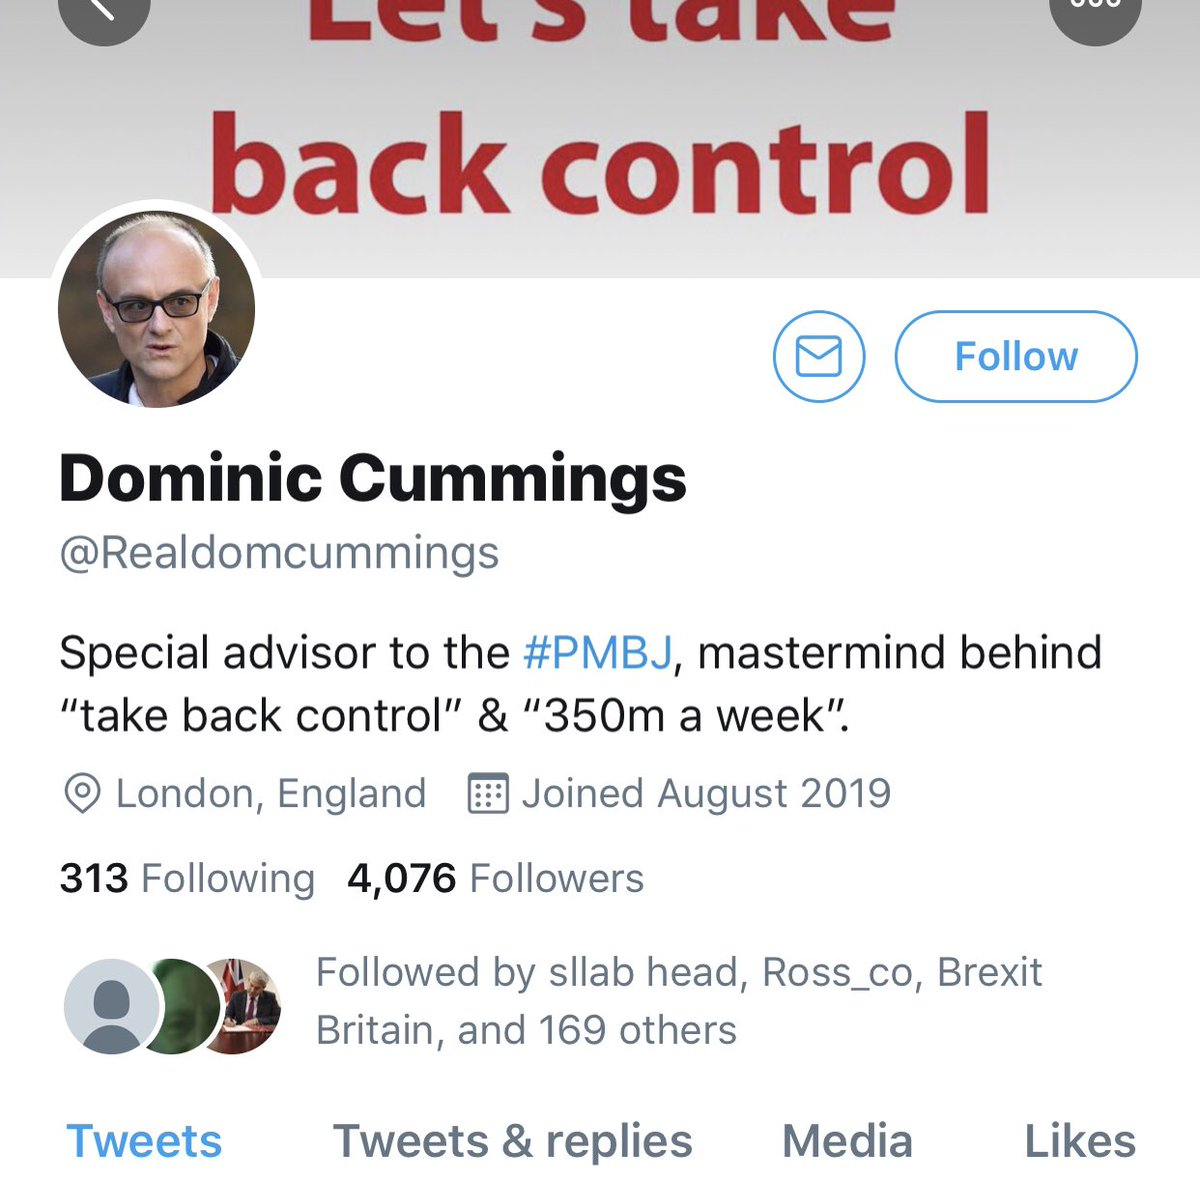 @Realdomcummings is a fake account run by FBPE @migthewelshman who is also @Brexitloon it's gained 4000 followers in under 24hr & could reach 100k by Monday! Dominic Cummings has already confirmed he has no twitter account which prompted me to investigate who was behind it!